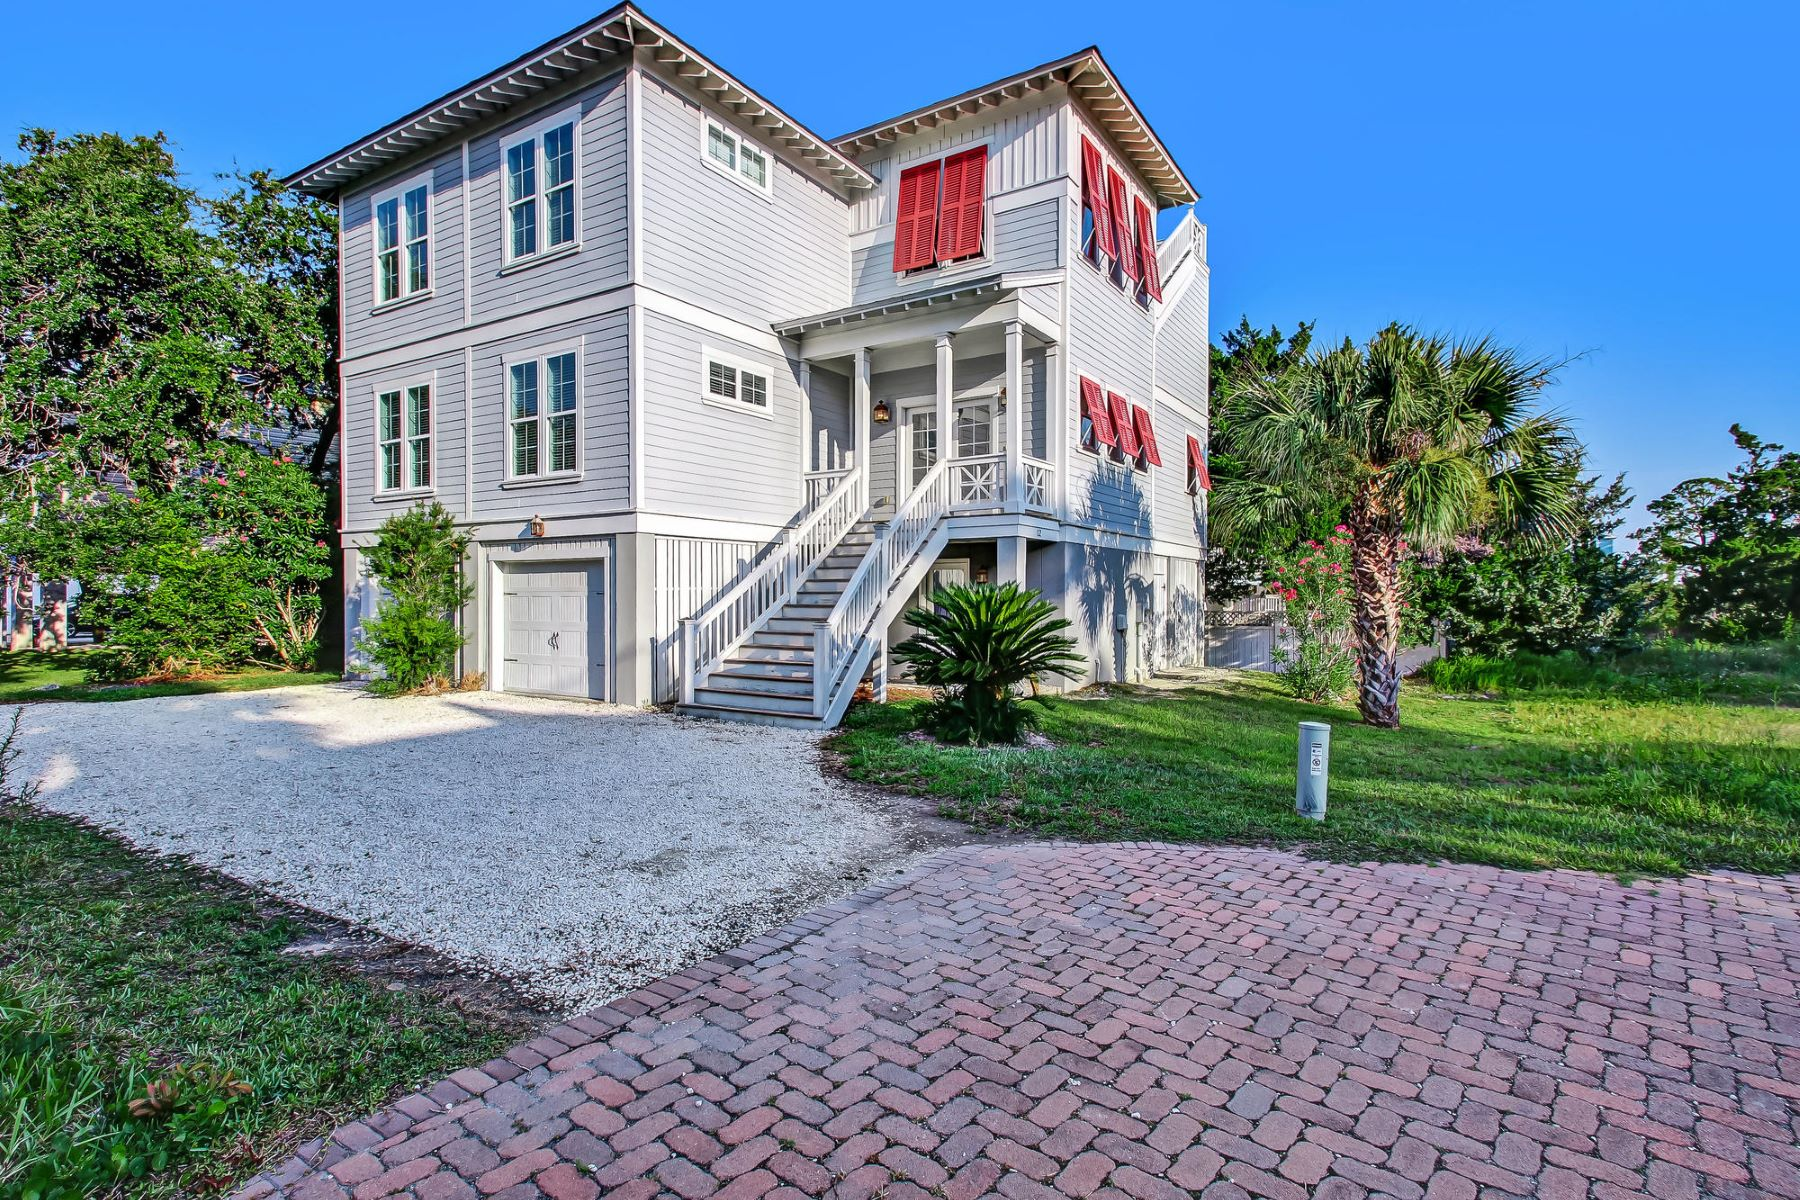 Single Family Homes for Sale at Tybee Island, Georgia 31328 United States